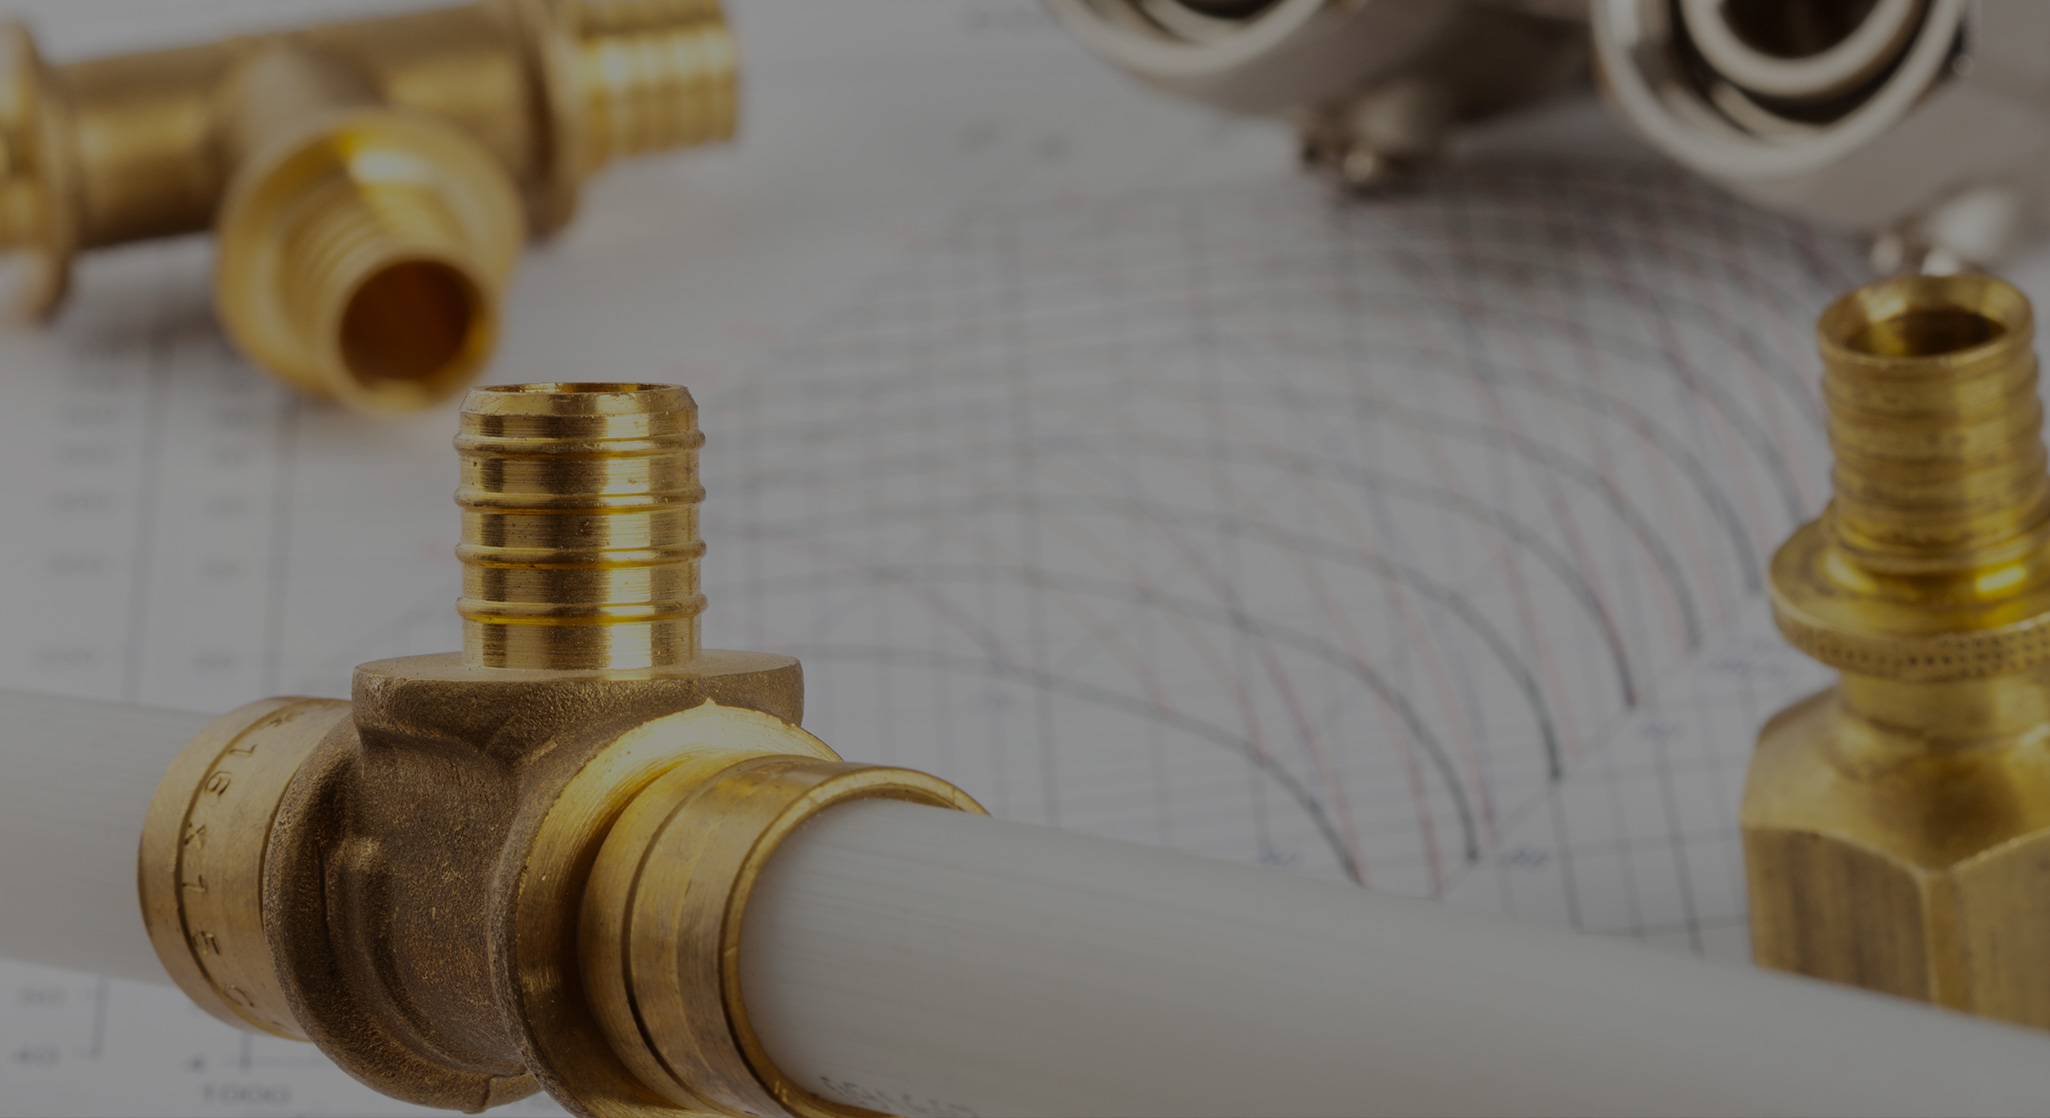 hot-water-system-installations-and-replacement/